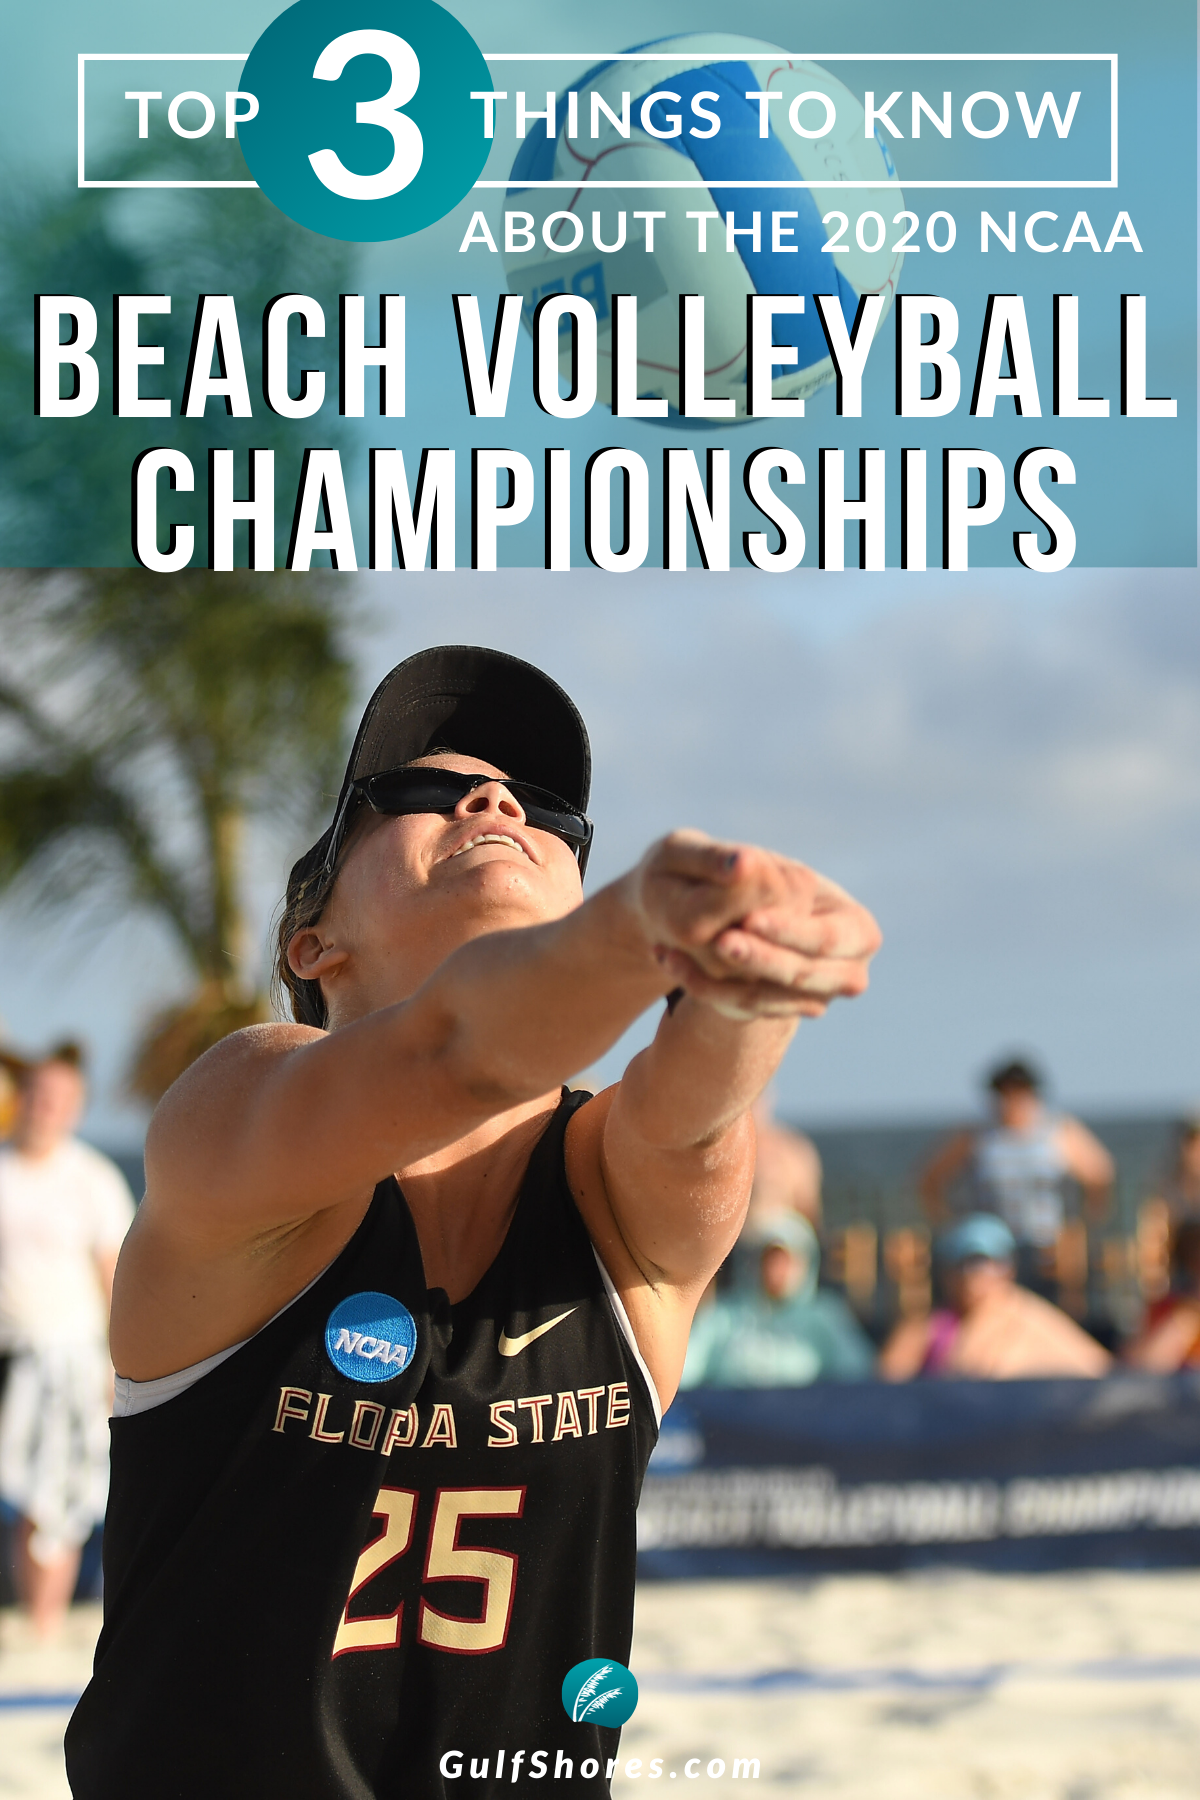 Top 3 Things To Know About The 2020 Ncaa Beach Volleyball Championship In 2020 Beach Volleyball Alabama Beaches Road Trip Fun